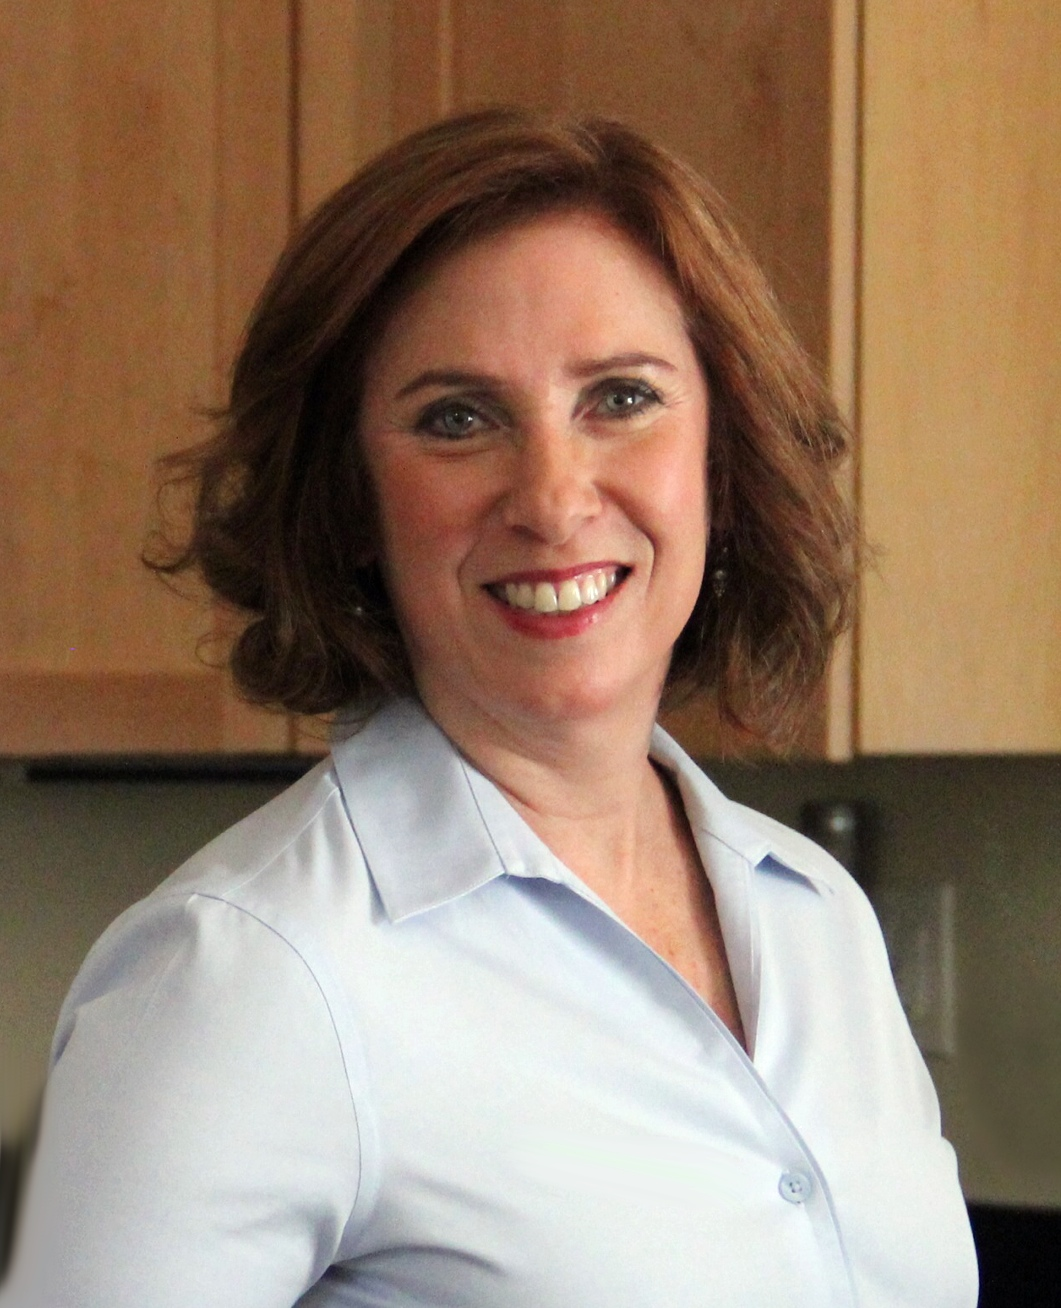 Lisa Rothstein, low FODMAP recipe developer and co-author of IBS-Free Recipes for the Whole Family.